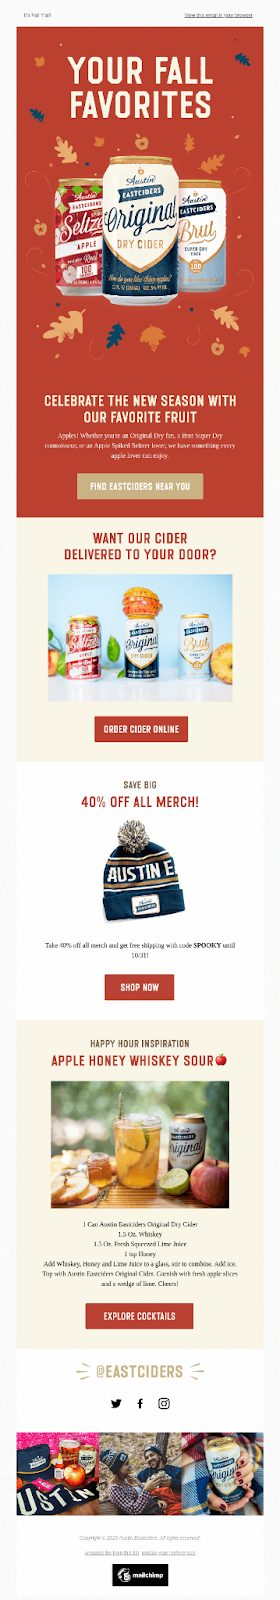 Austin Eastiders - Fall Email Campaign Example